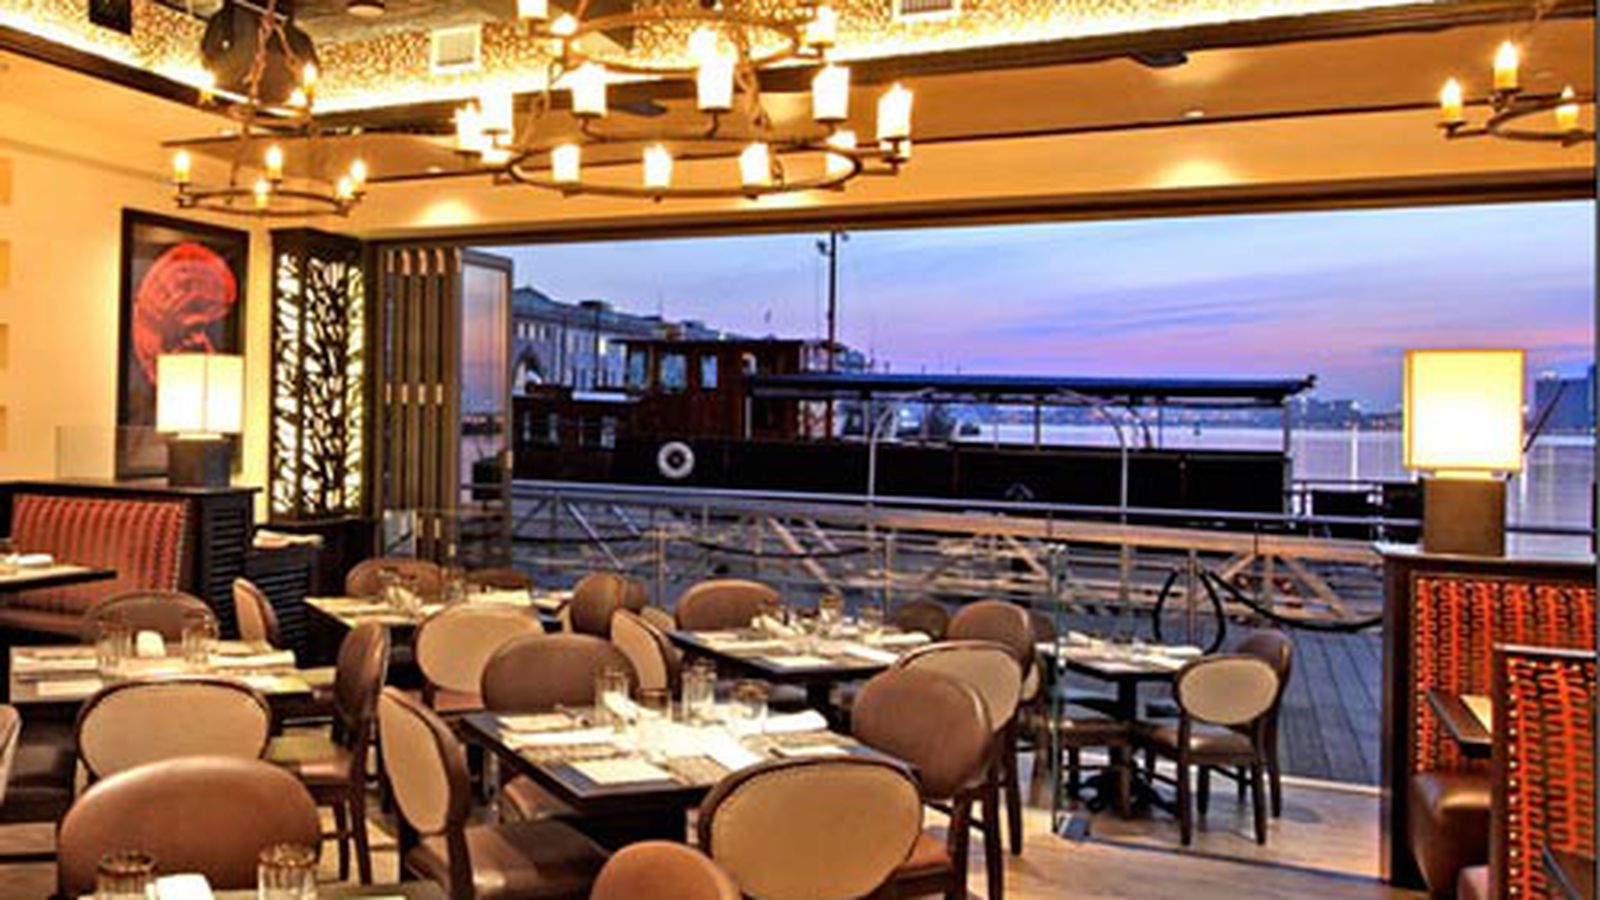 Meritage The Restaurant - Boston Harbor Hotel Restaurant ...